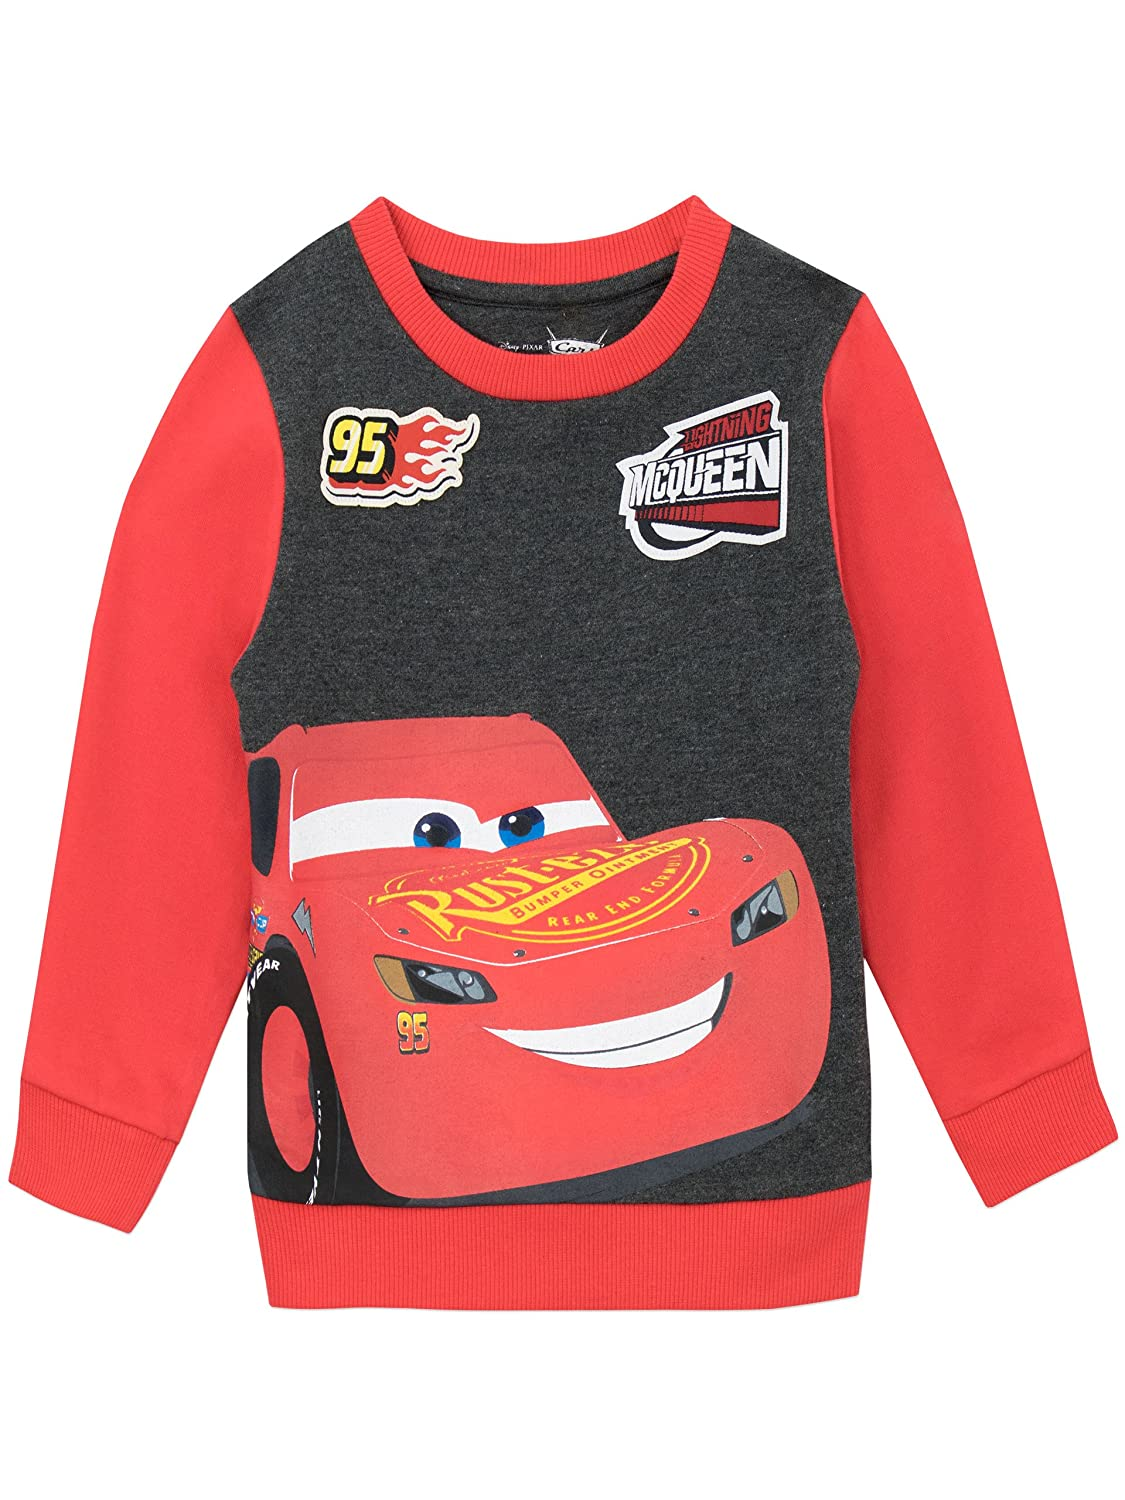 Disney Cars Boys Cars Sweatshirt Ages 18 Months To 8 Years